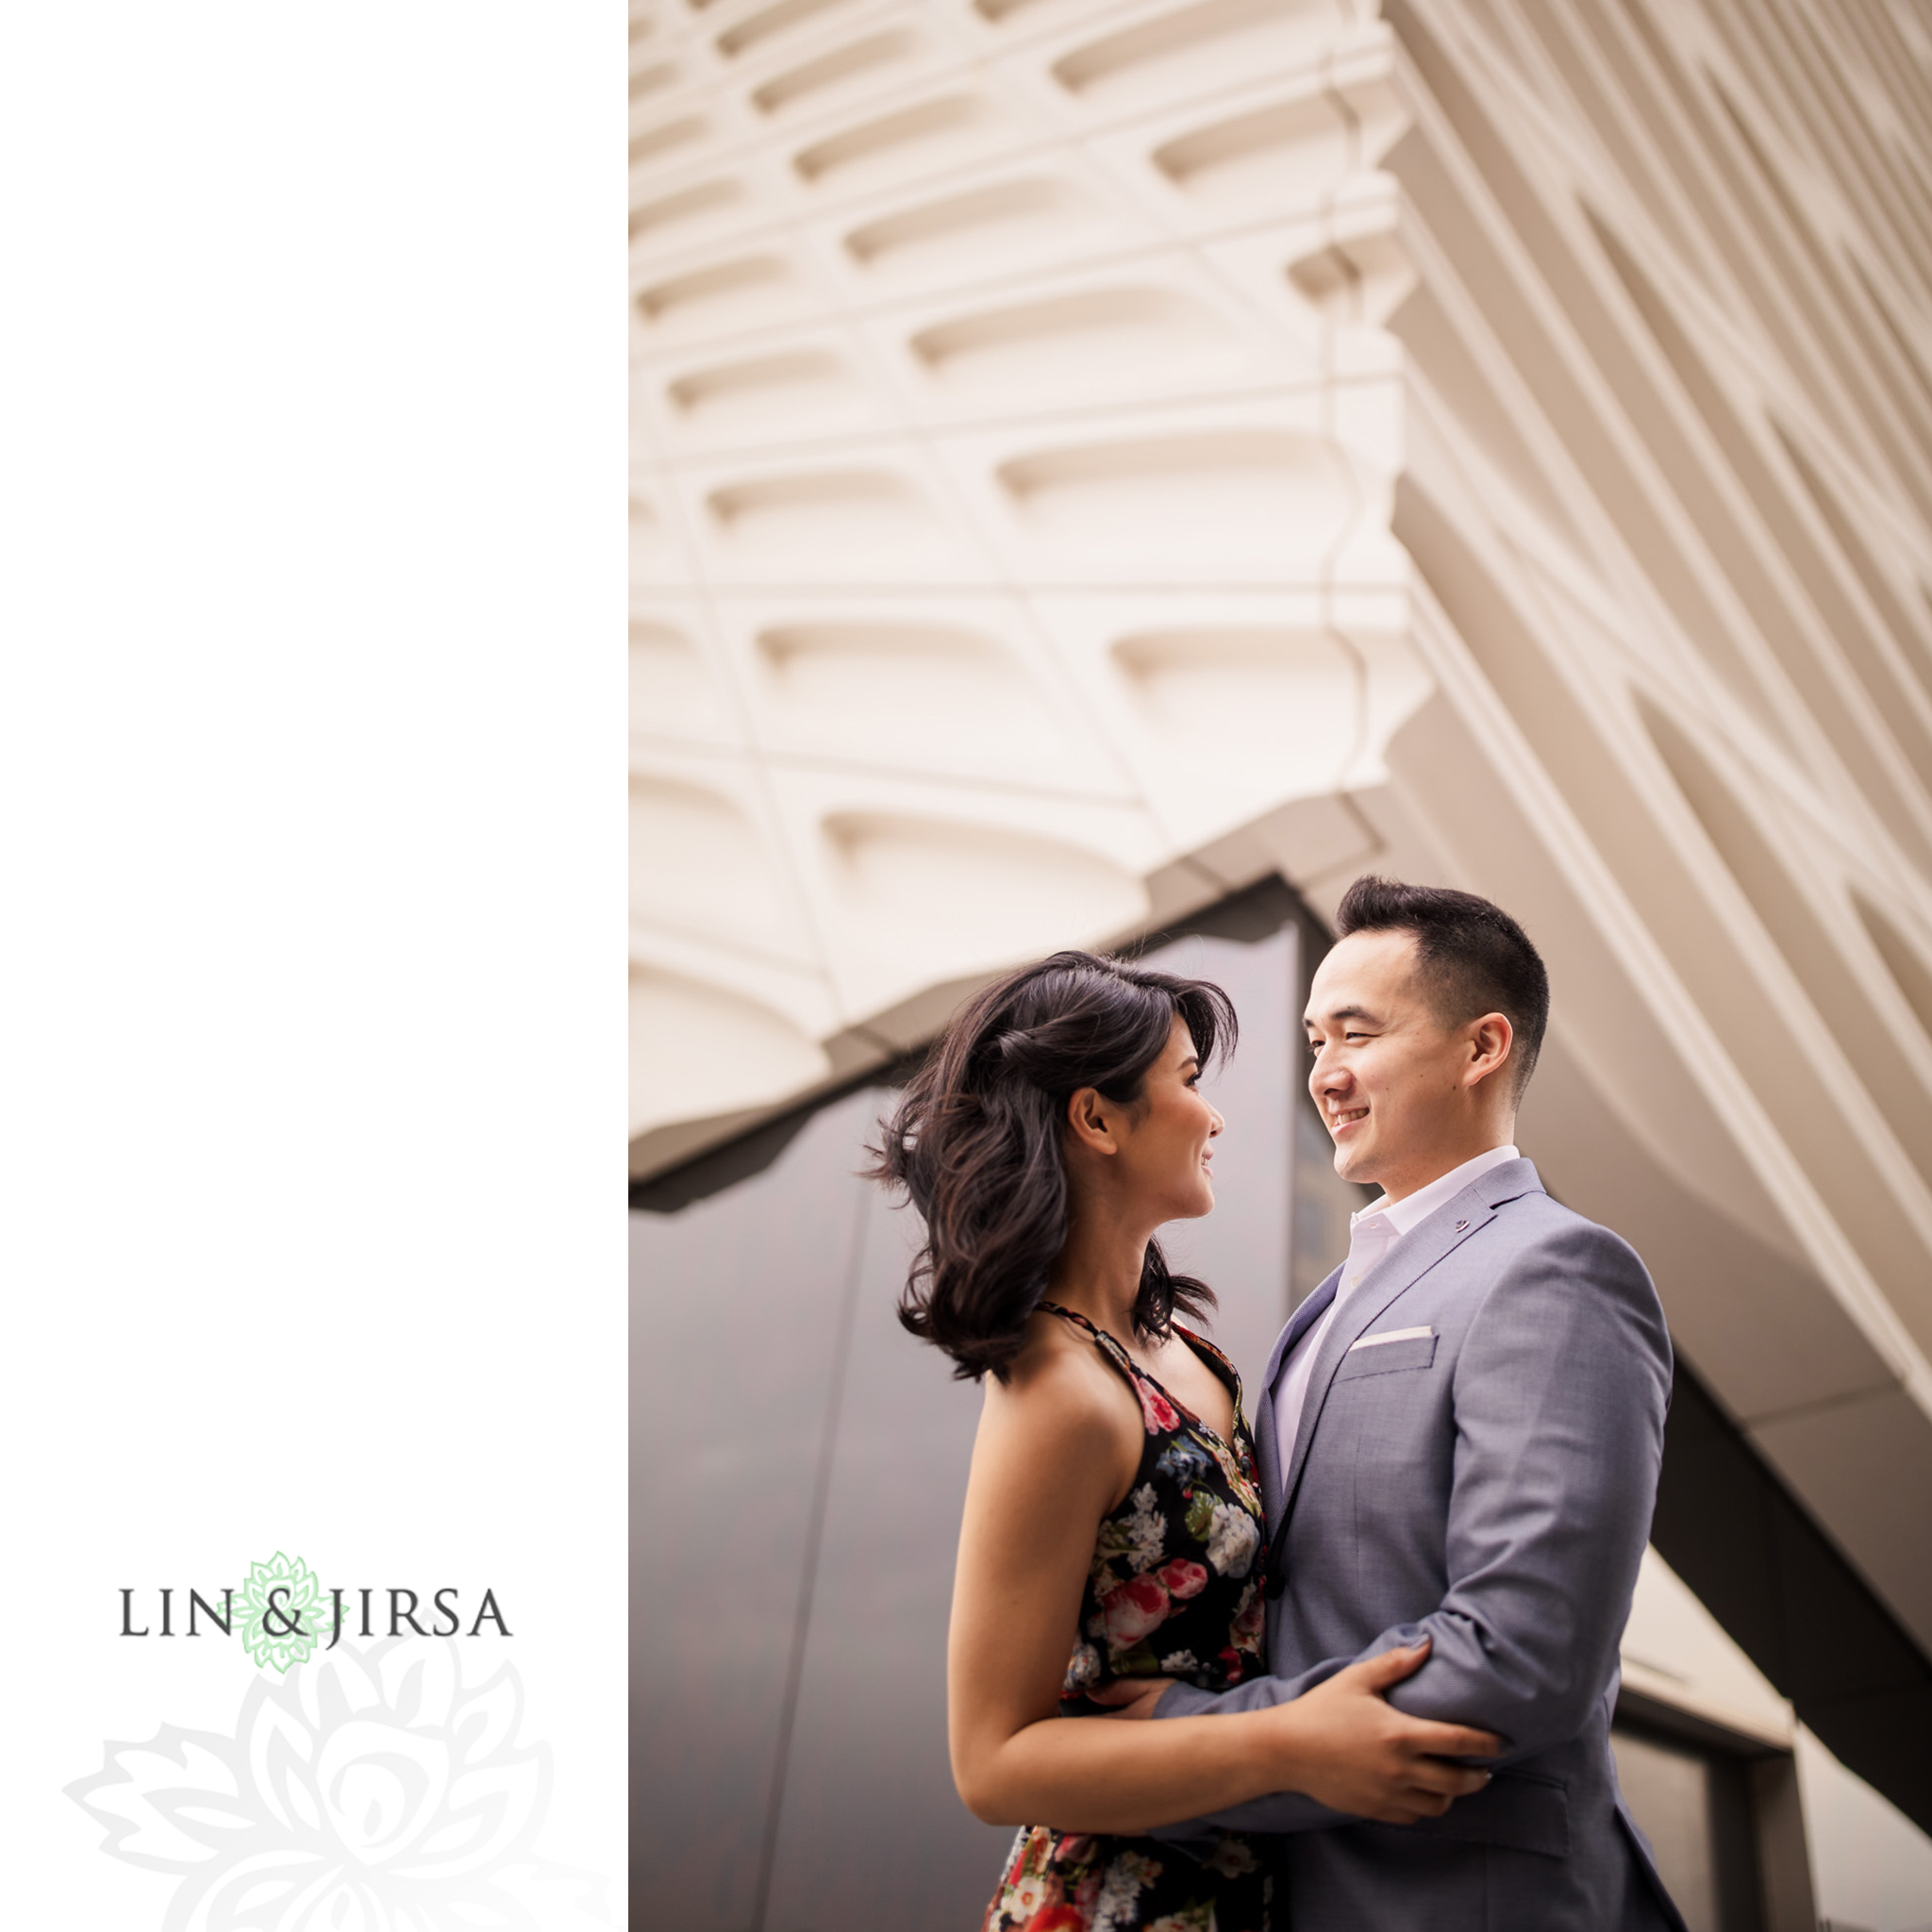 07 broad museum downtown los angeles engagement photography